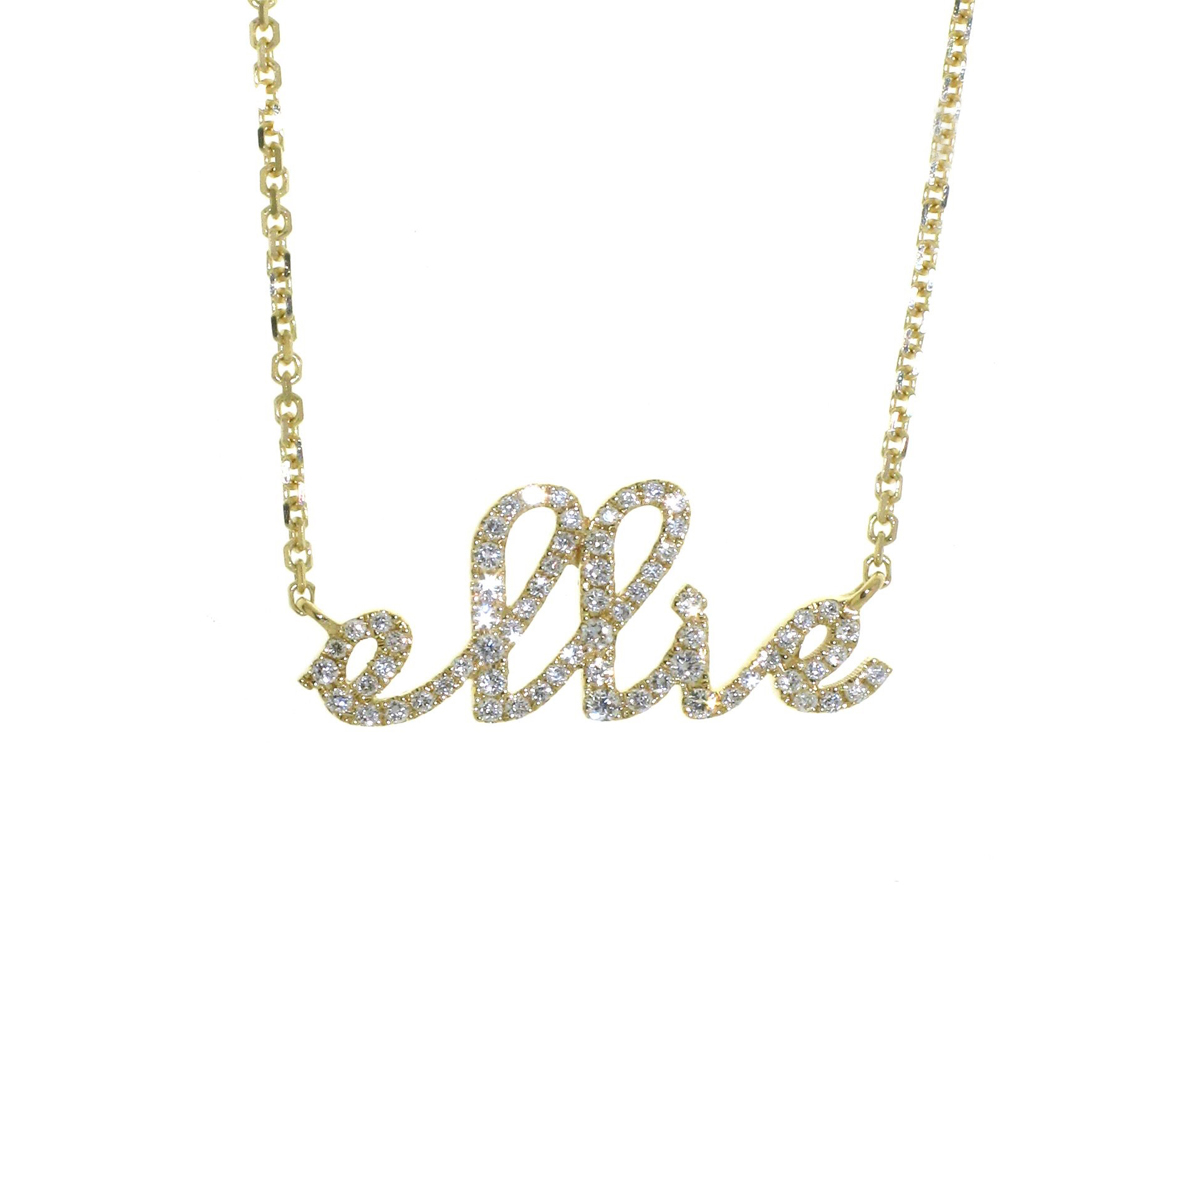 Sue gragg personalized diamond name necklace